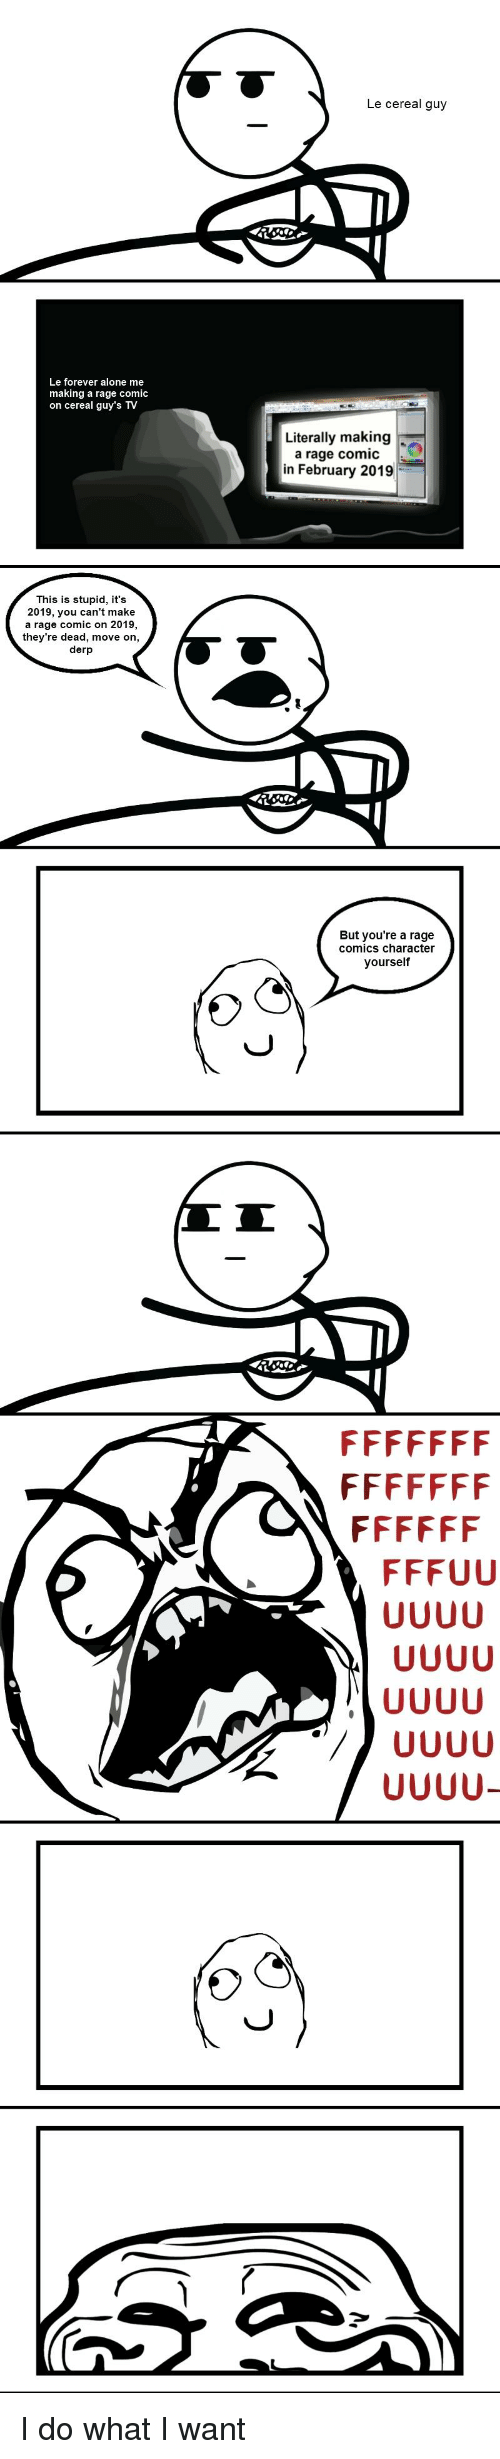 cereal guy: Le cereal guy  Le forever alone me  making a rage comic  on cereal guy's TV  Literally making  a rage comic  in February 2019  This is stupid, it's  2019, you can't make  a rage comic on 2019  they're dead, move on,  derp  But you're a rage  comics character  yourself